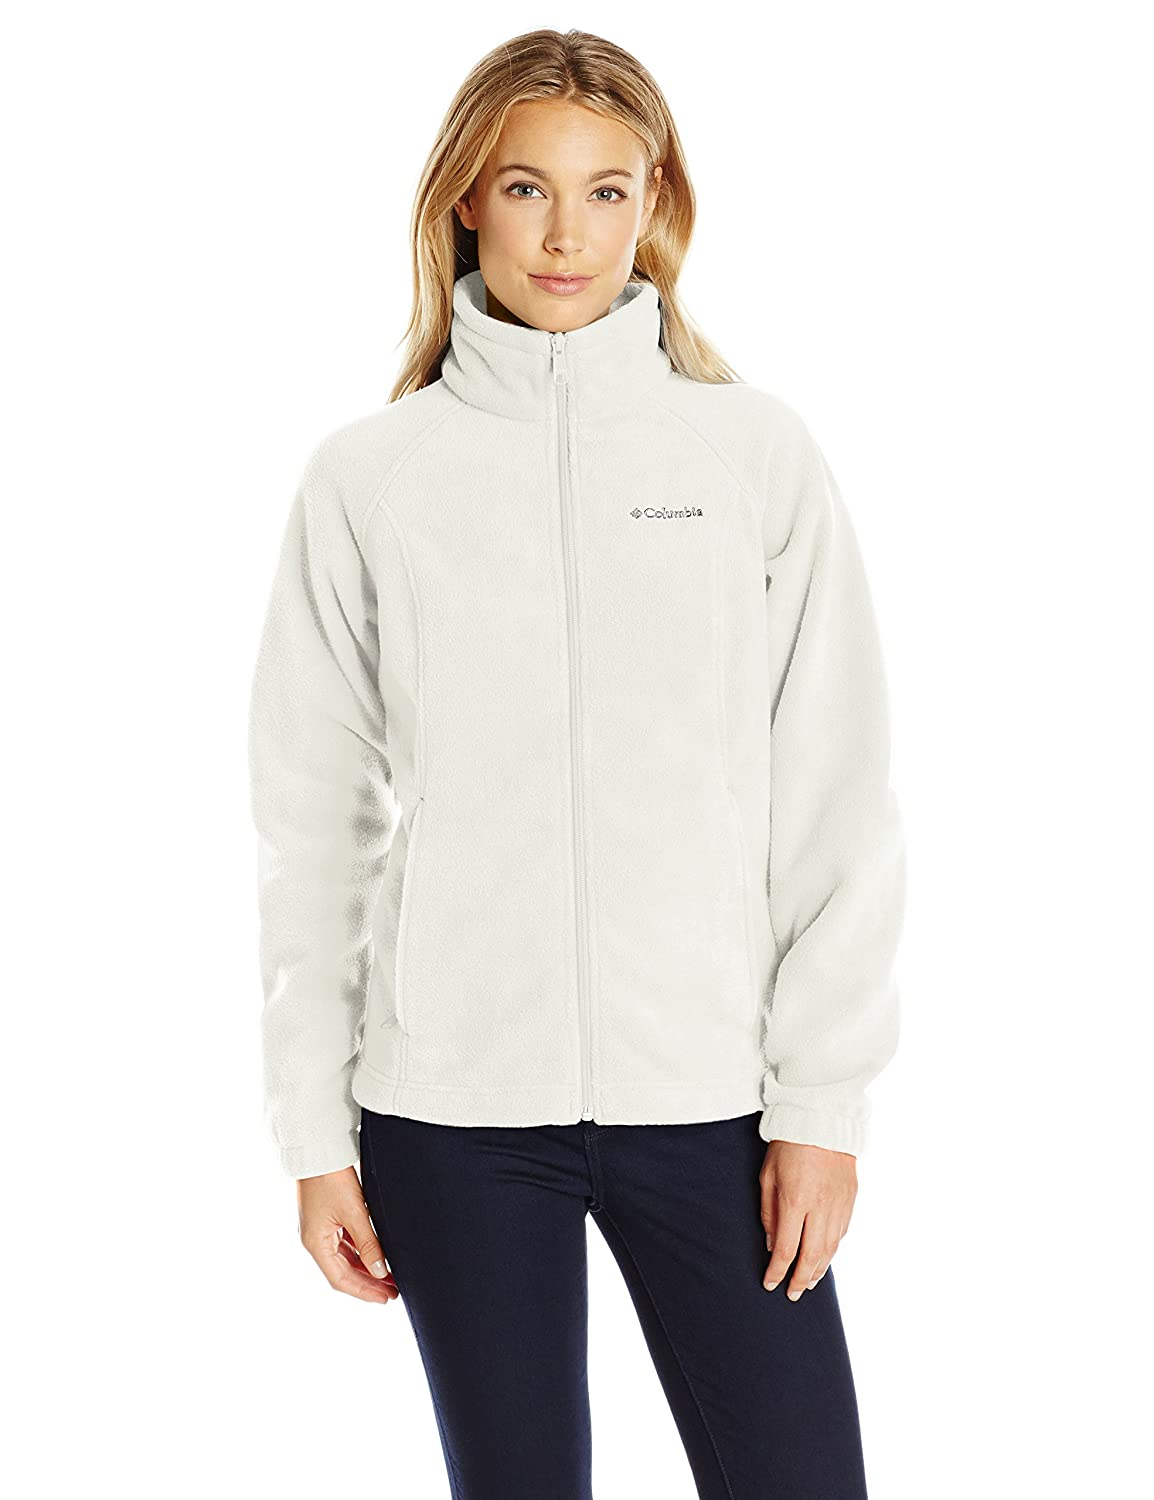 Columbia Womens Petite-Plus-Size Benton Springs Full Zip 1372113